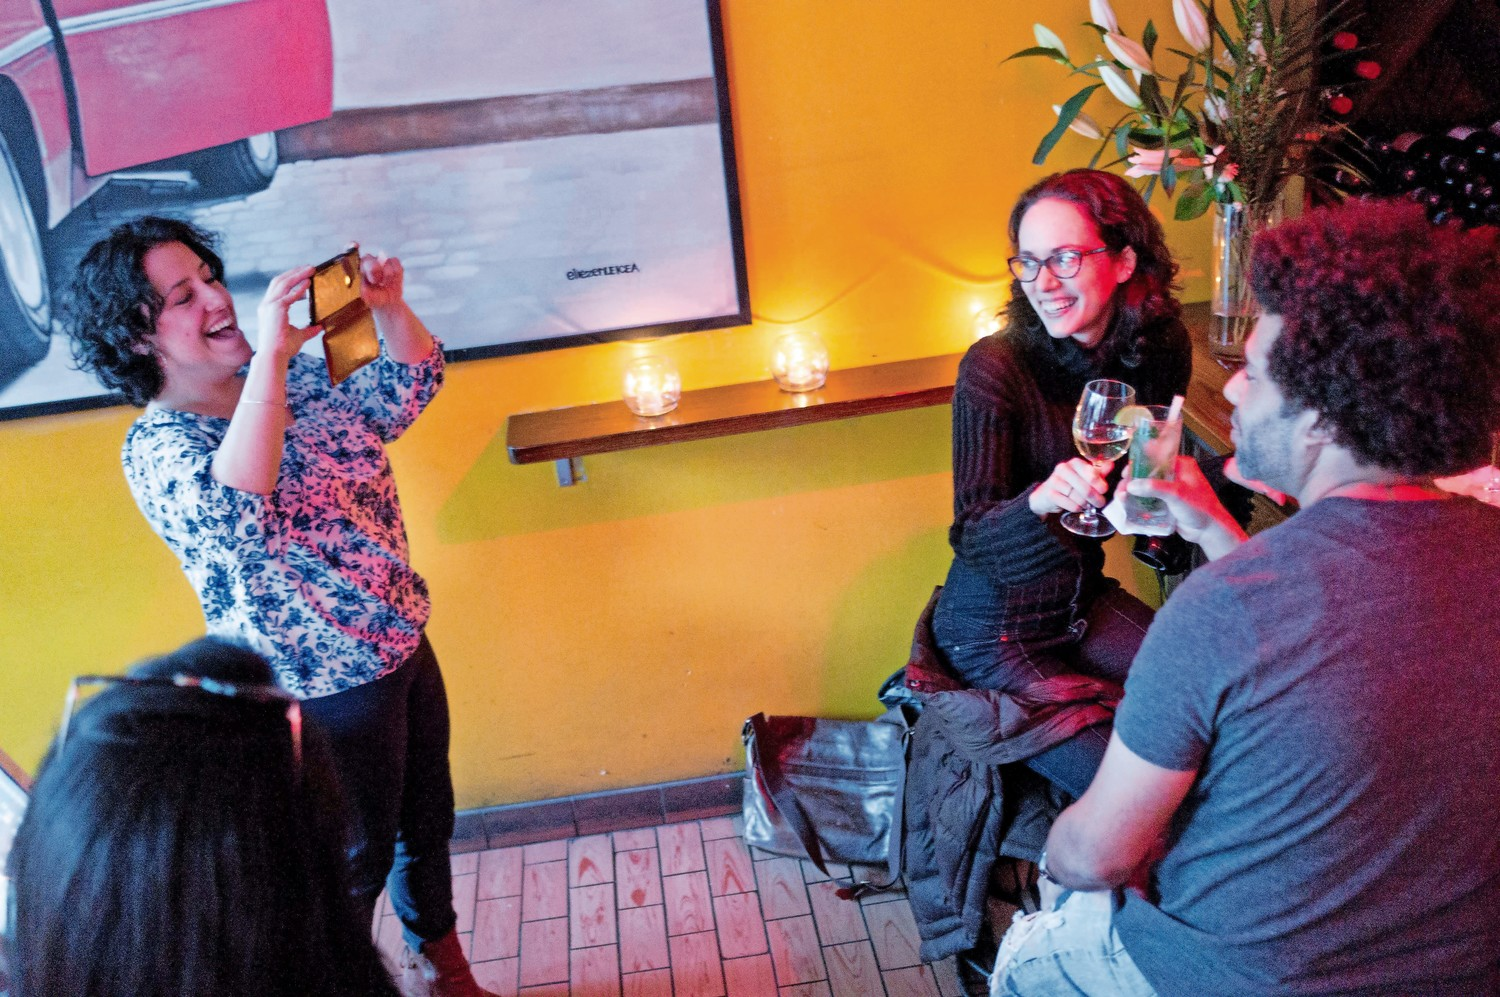 Lehman College professor Teresita Levy, left, takes a picture of graduate students Sophia Cutler and Ivan Waldo at Amor Cubano.